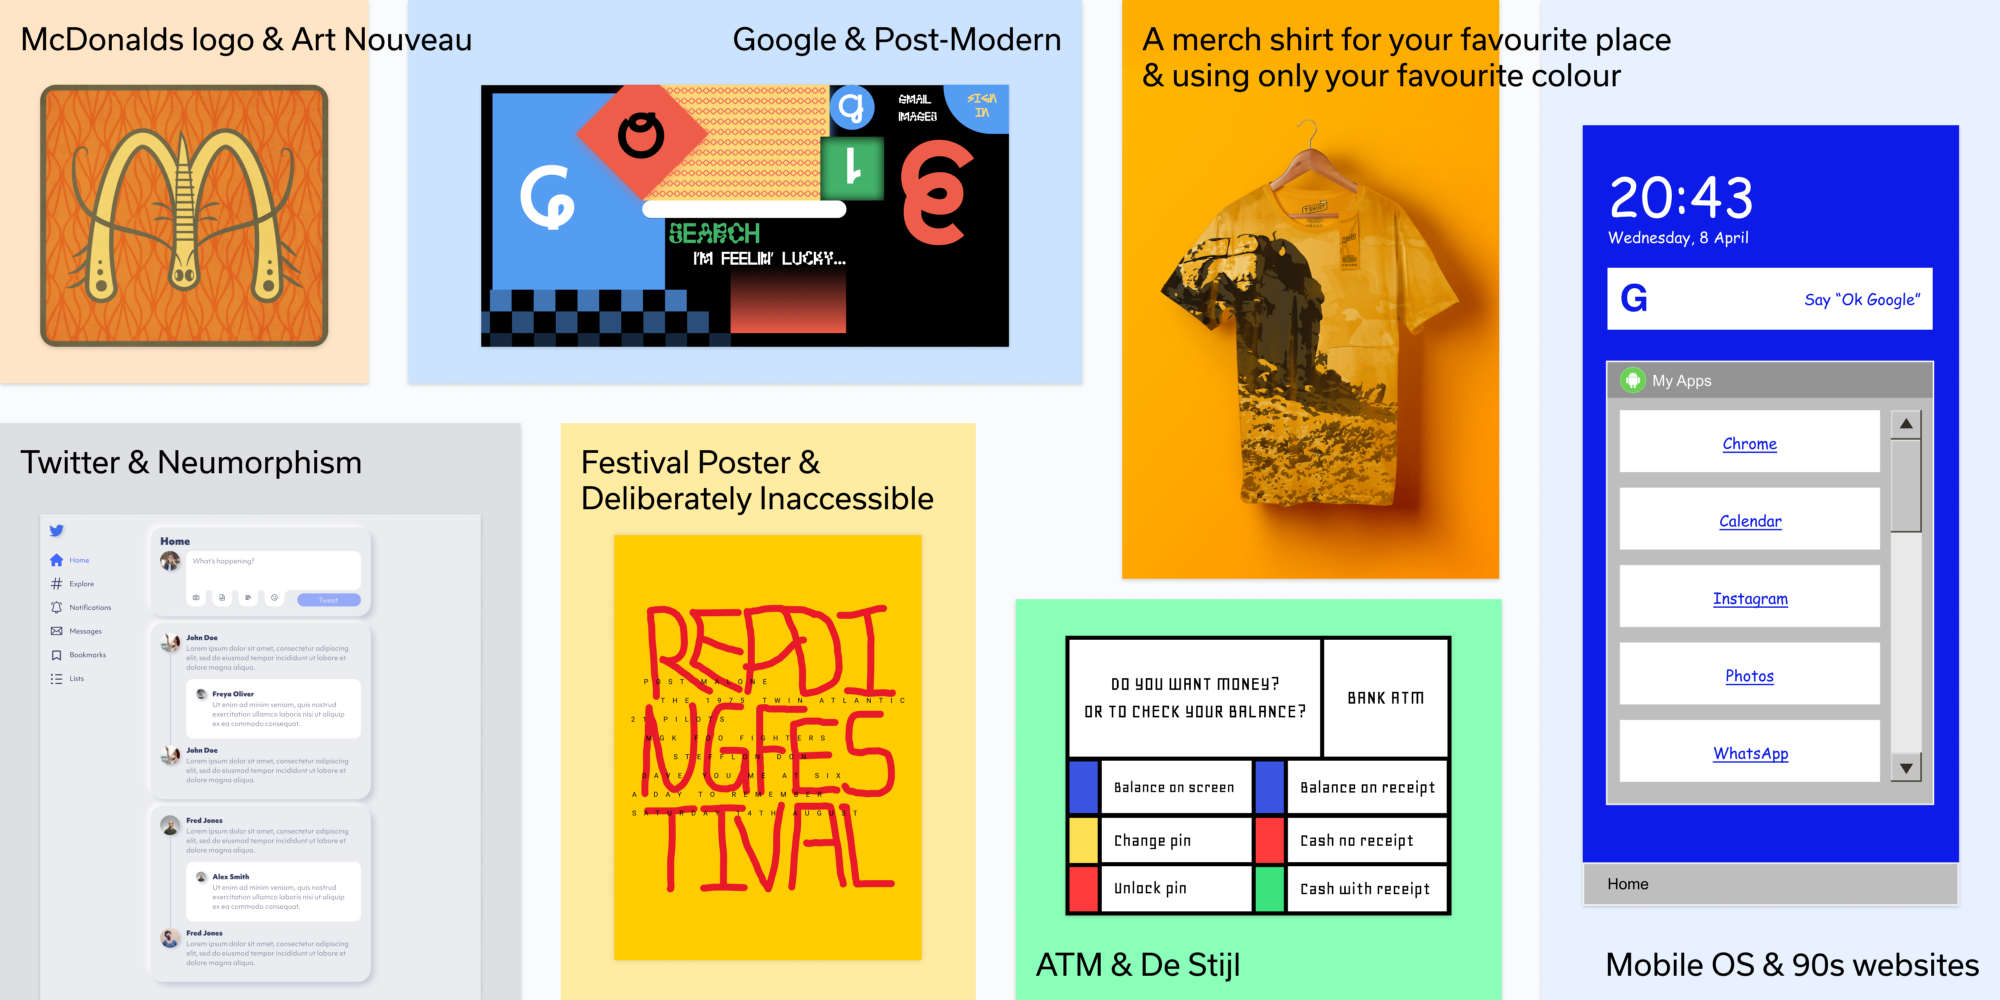 A set of our redesigns including the McDonald's logo in an Art Nouveau style, Google in a Post-Modern style and more.